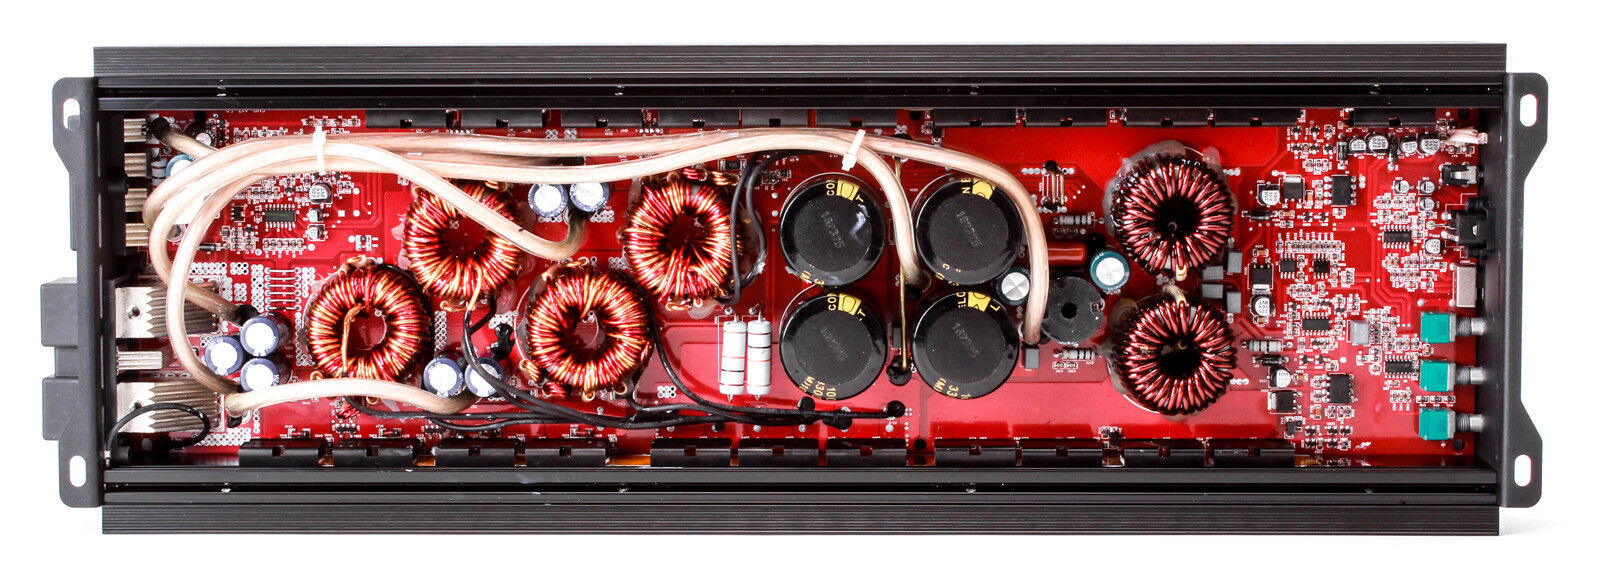 New Skar Audio Rp 20001d 2800 Watt Max Power Clas In Electronics Wiring Class D Monoblock Sub Amplifier